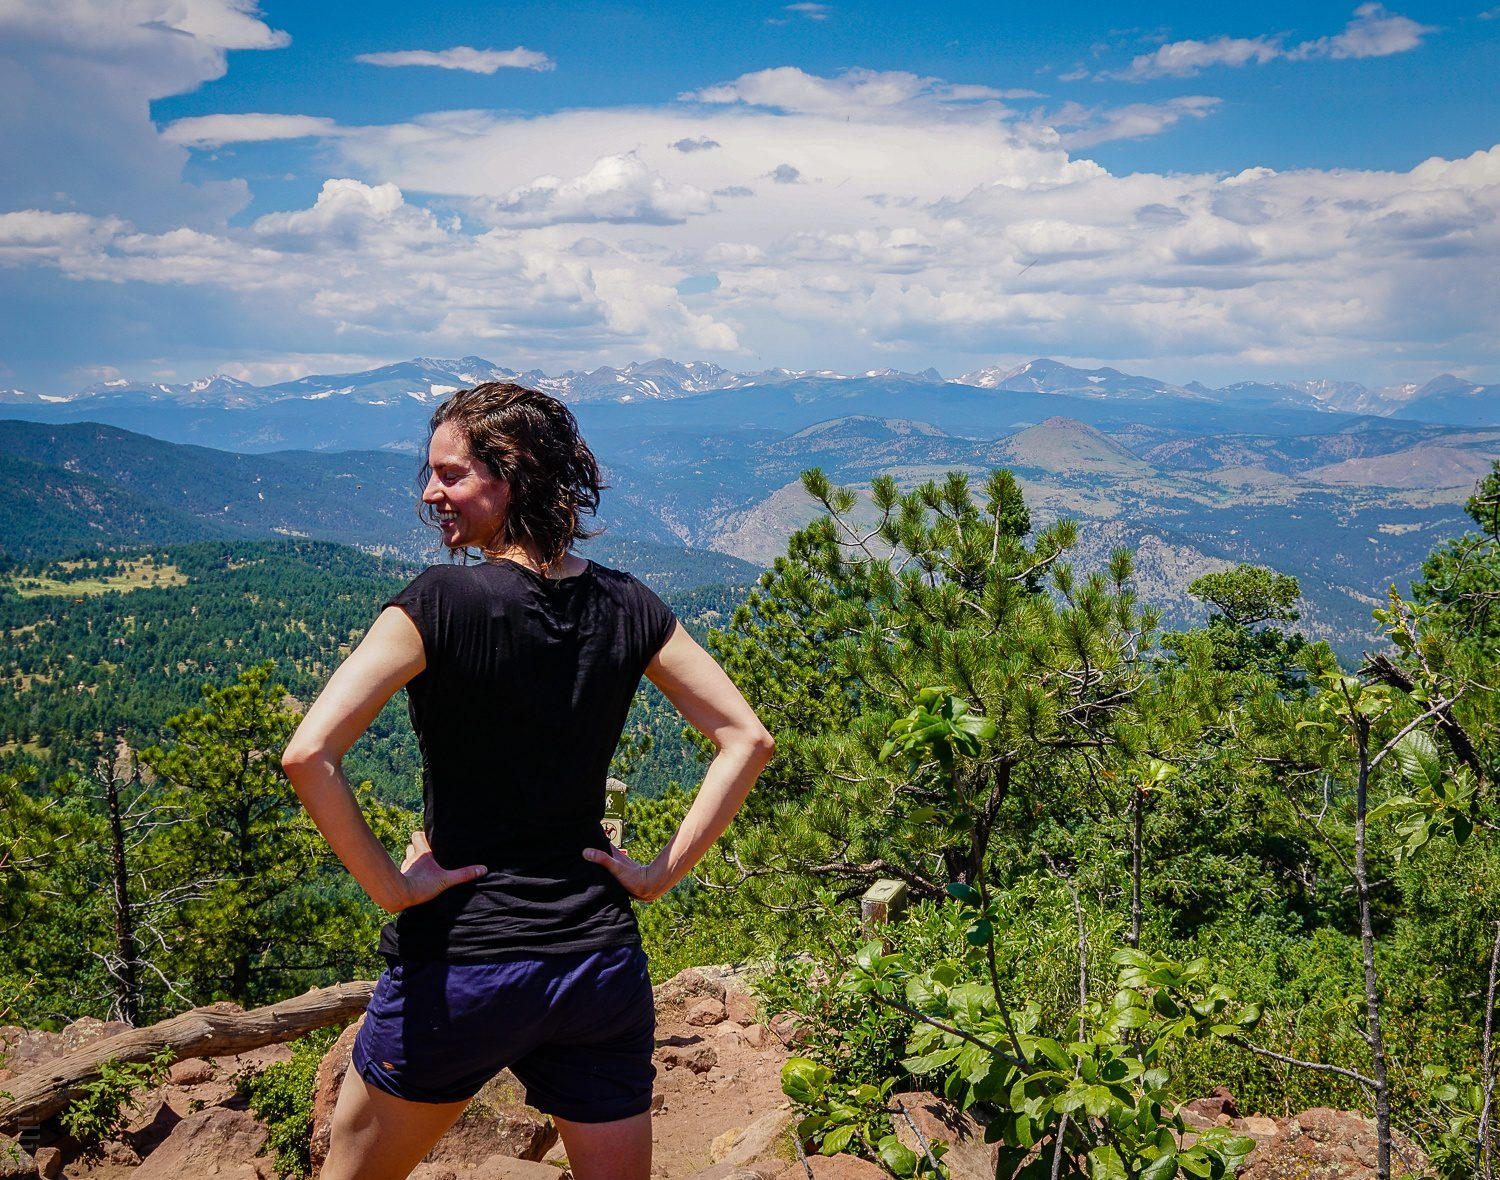 Powerful Rocky Mountain views from this hike!